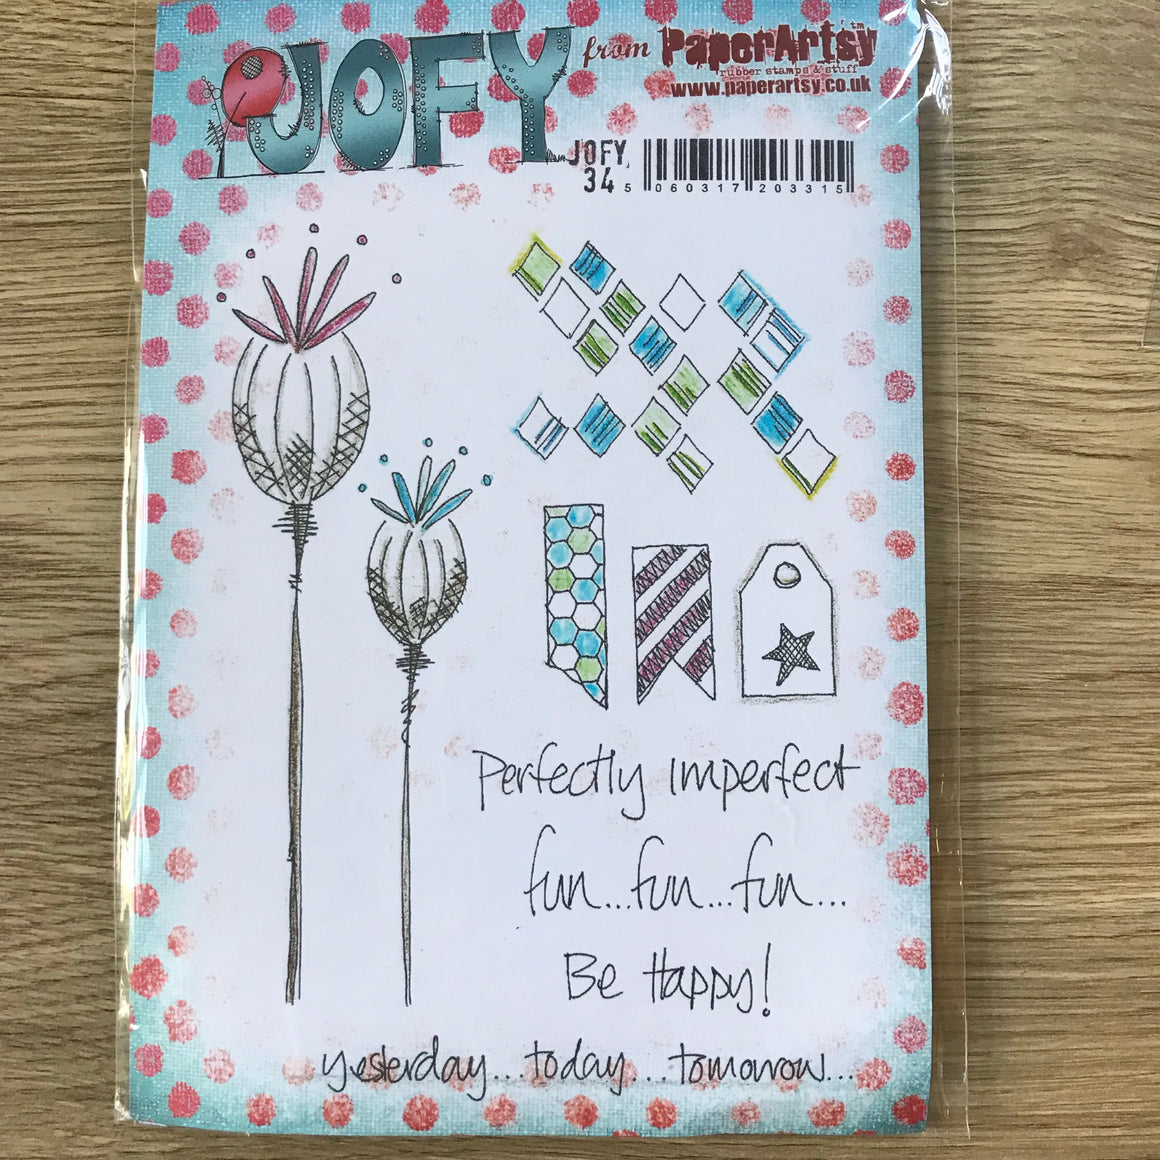 CLEARANCE - Jofy Stamps - PaperArtsy Jofy34